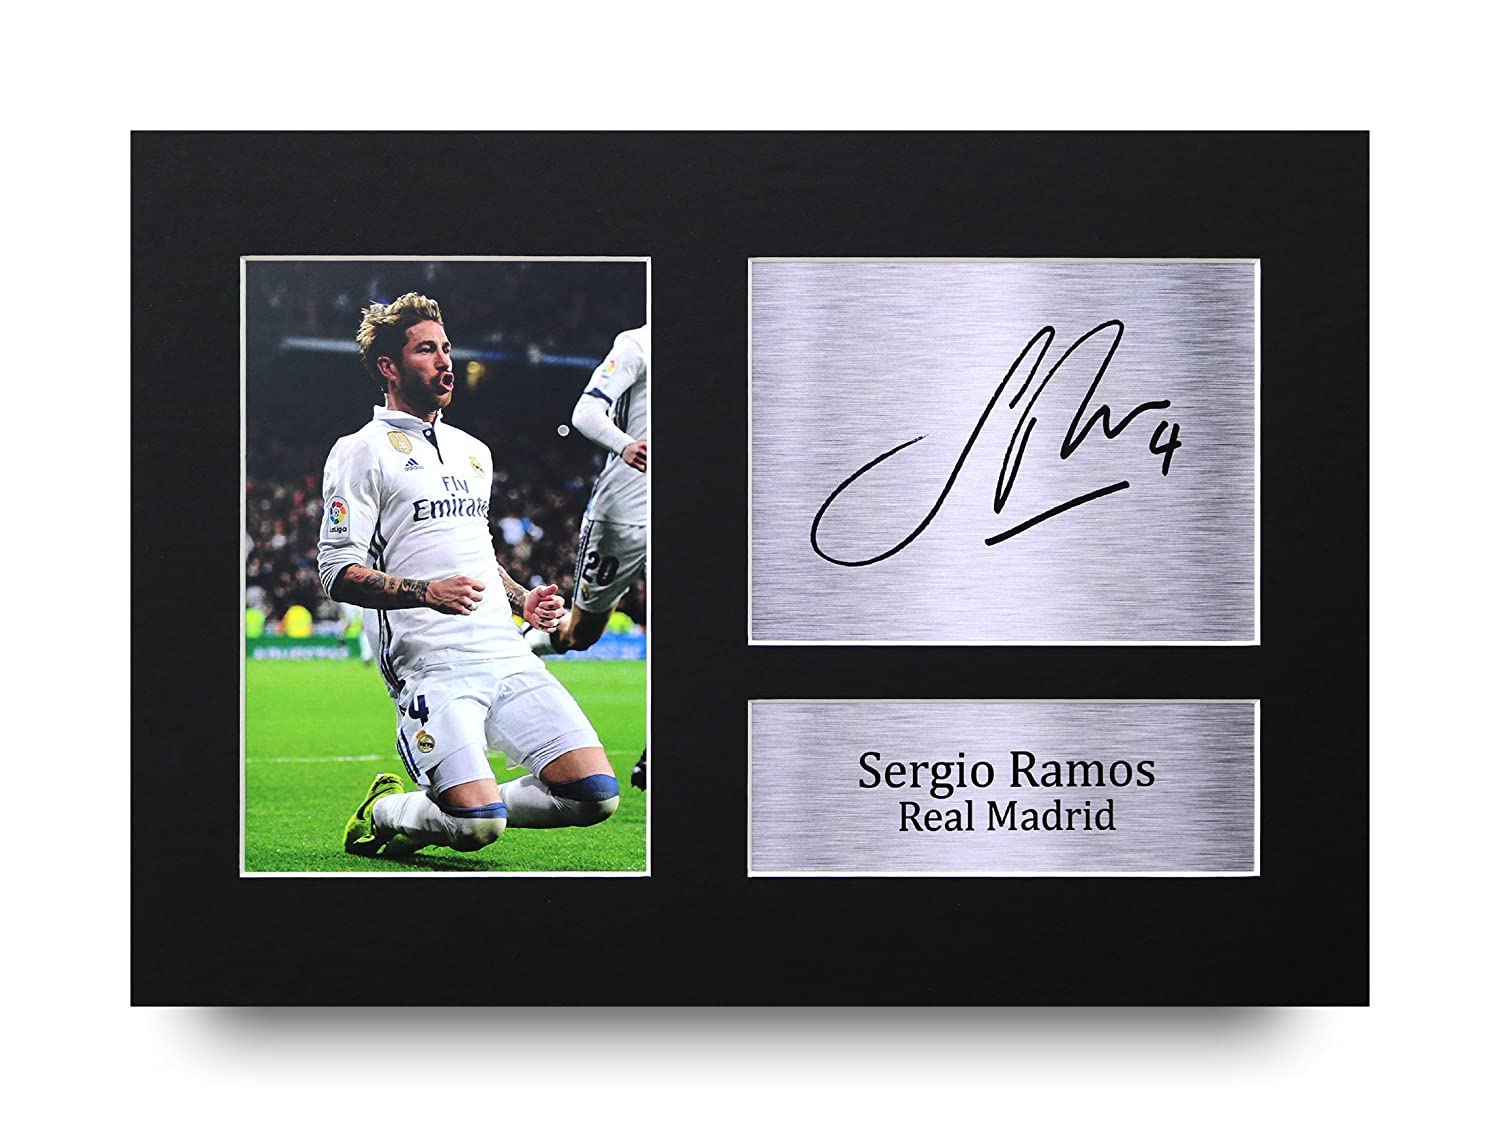 Sergio Ramos firmato A4 stampato Autograph Real Madrid stampa foto immagine display – Great gift idea HWC Trading